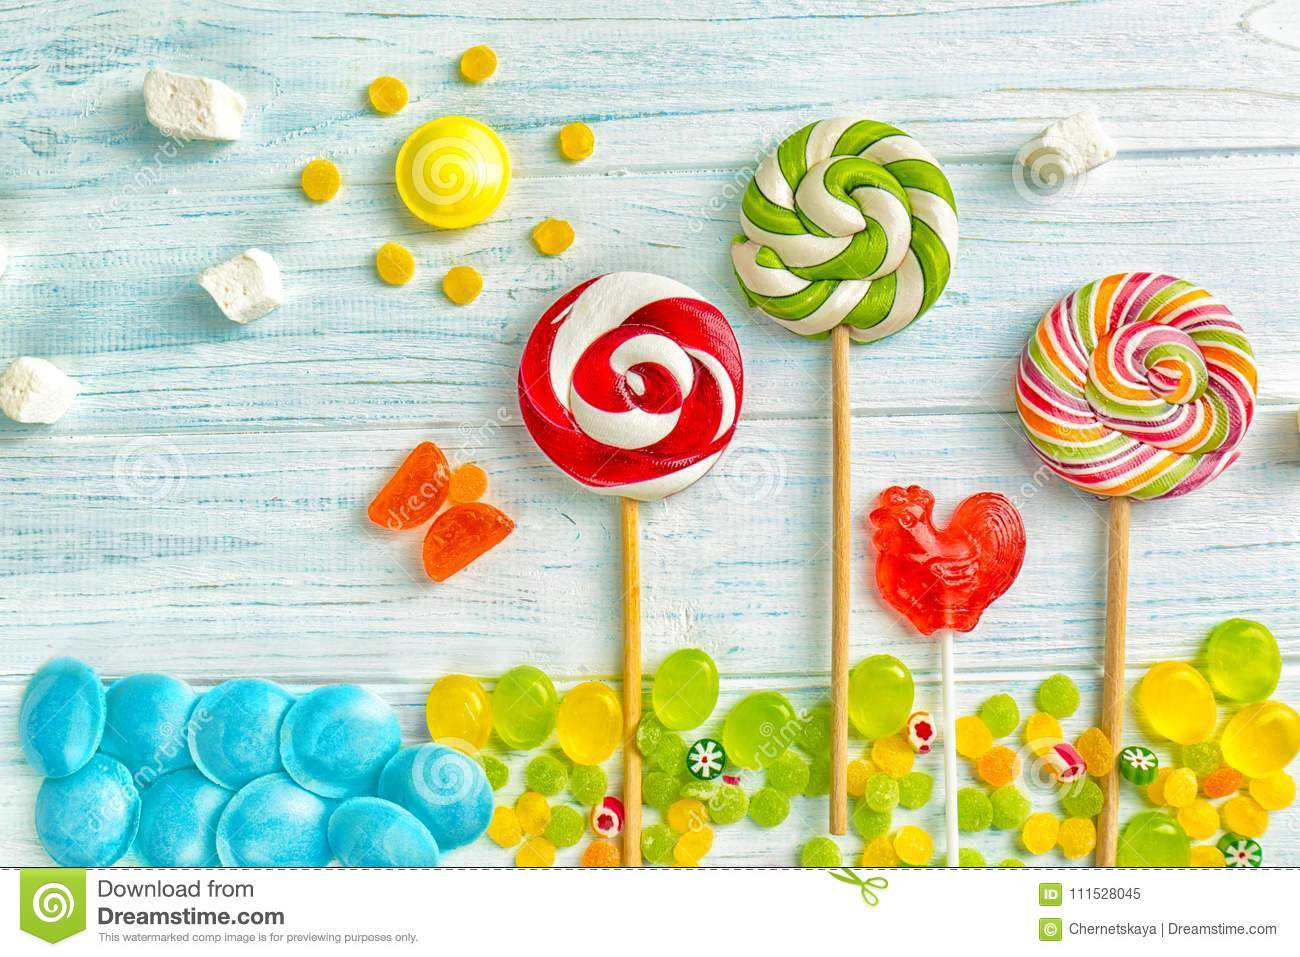 Candies and lollipops stock image  Image of natural - 111528045